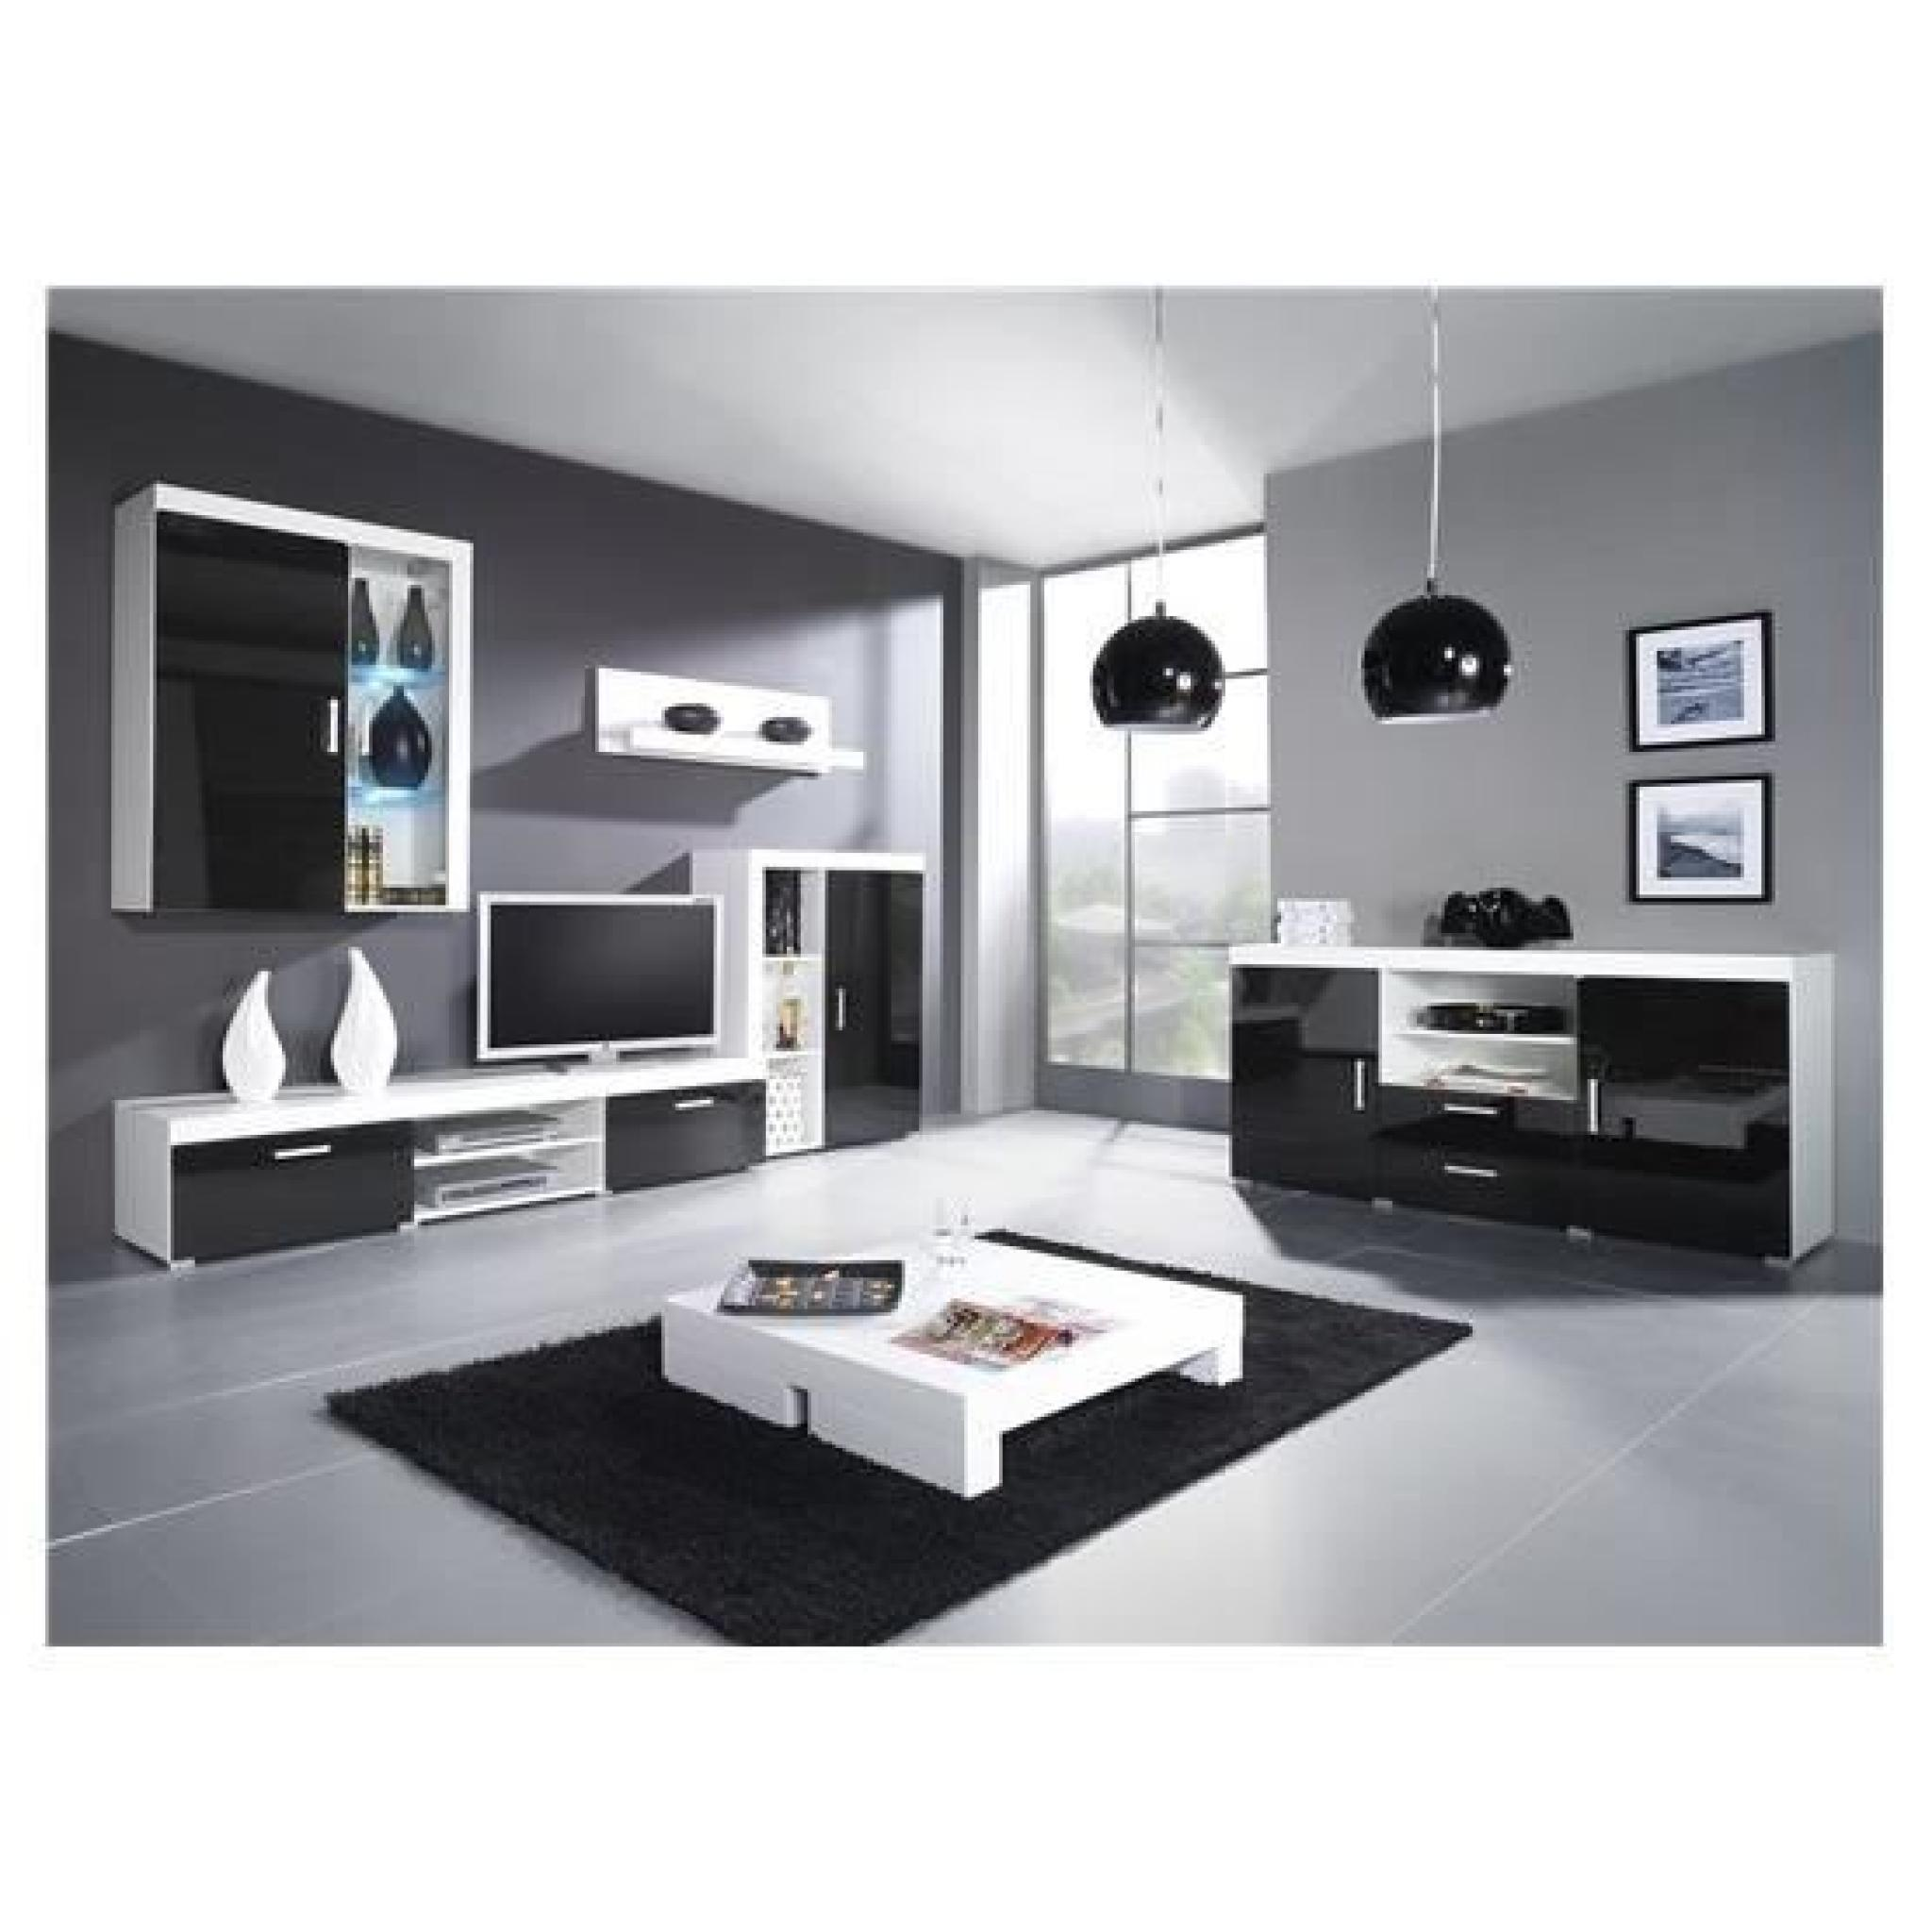 meuble tv design pas cher blanc id es de d coration. Black Bedroom Furniture Sets. Home Design Ideas